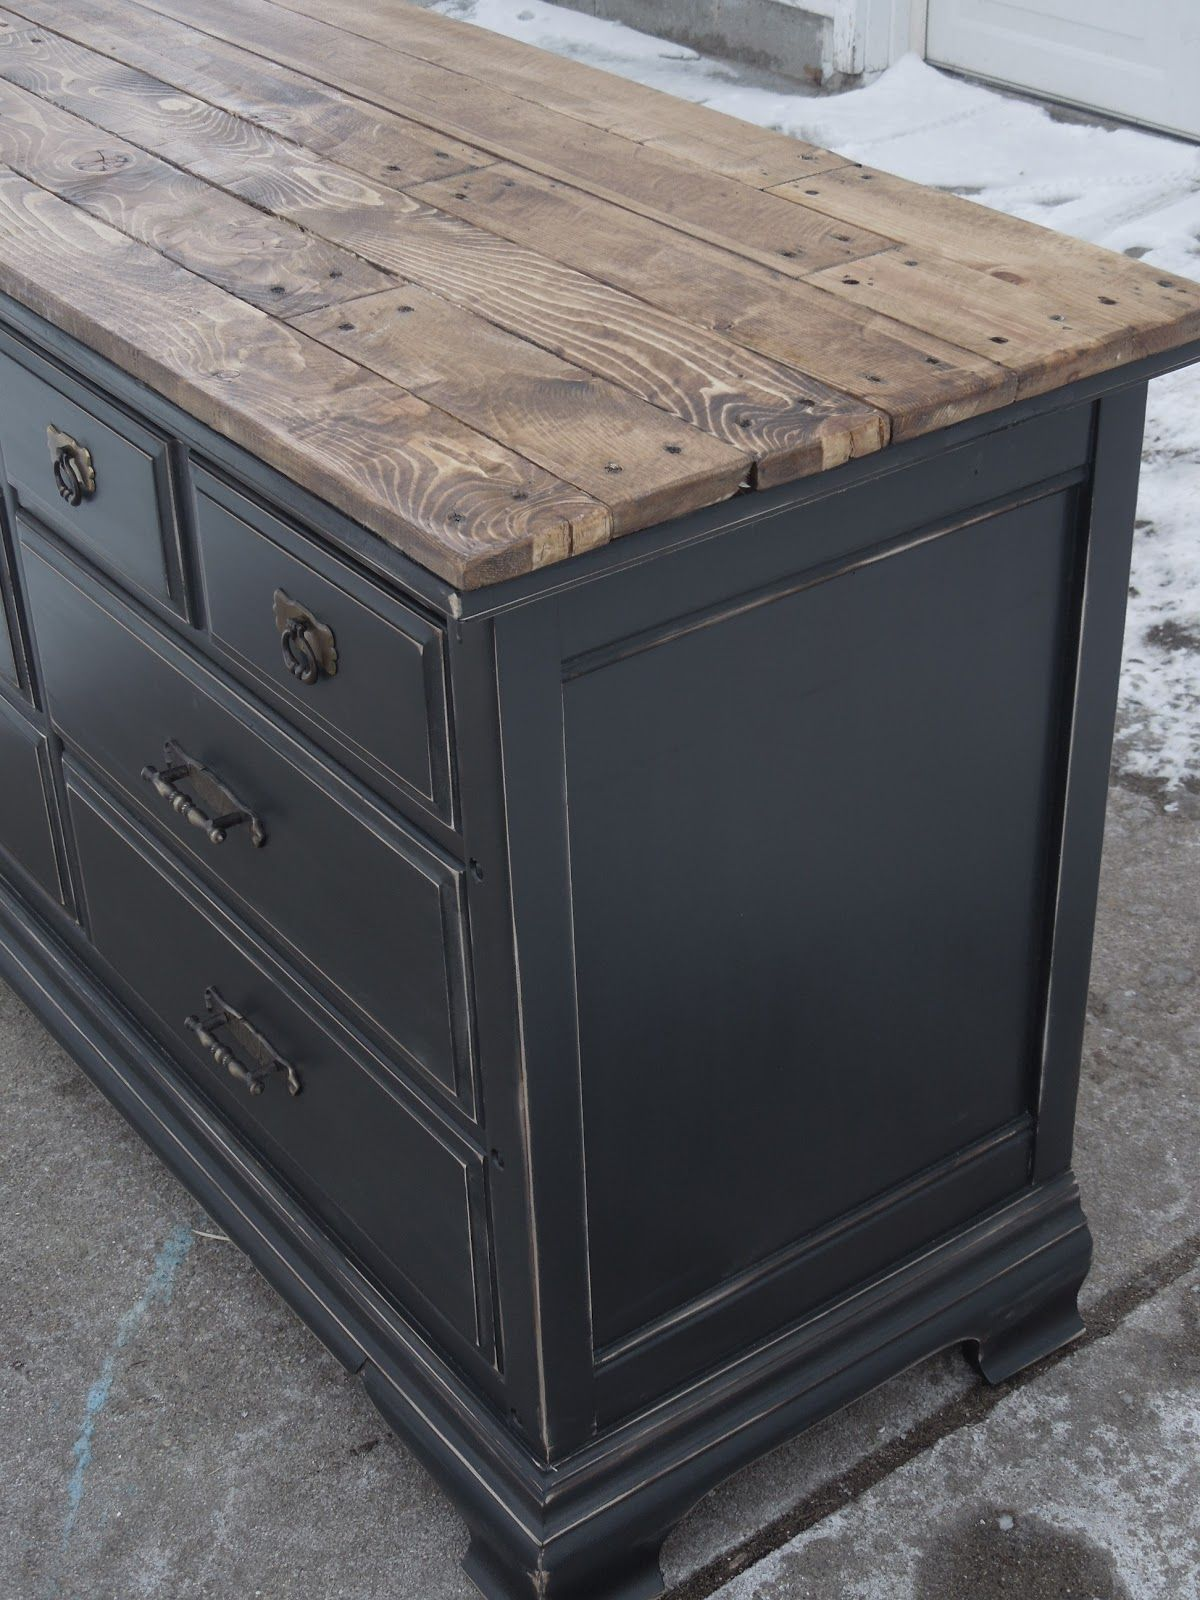 Beau Beautiful Dresser, Painted Black And Lightly Distressed. Stained Wood  Planked Top. The Dresser Is Made By Basset. I Usually Donu0027t Pain.